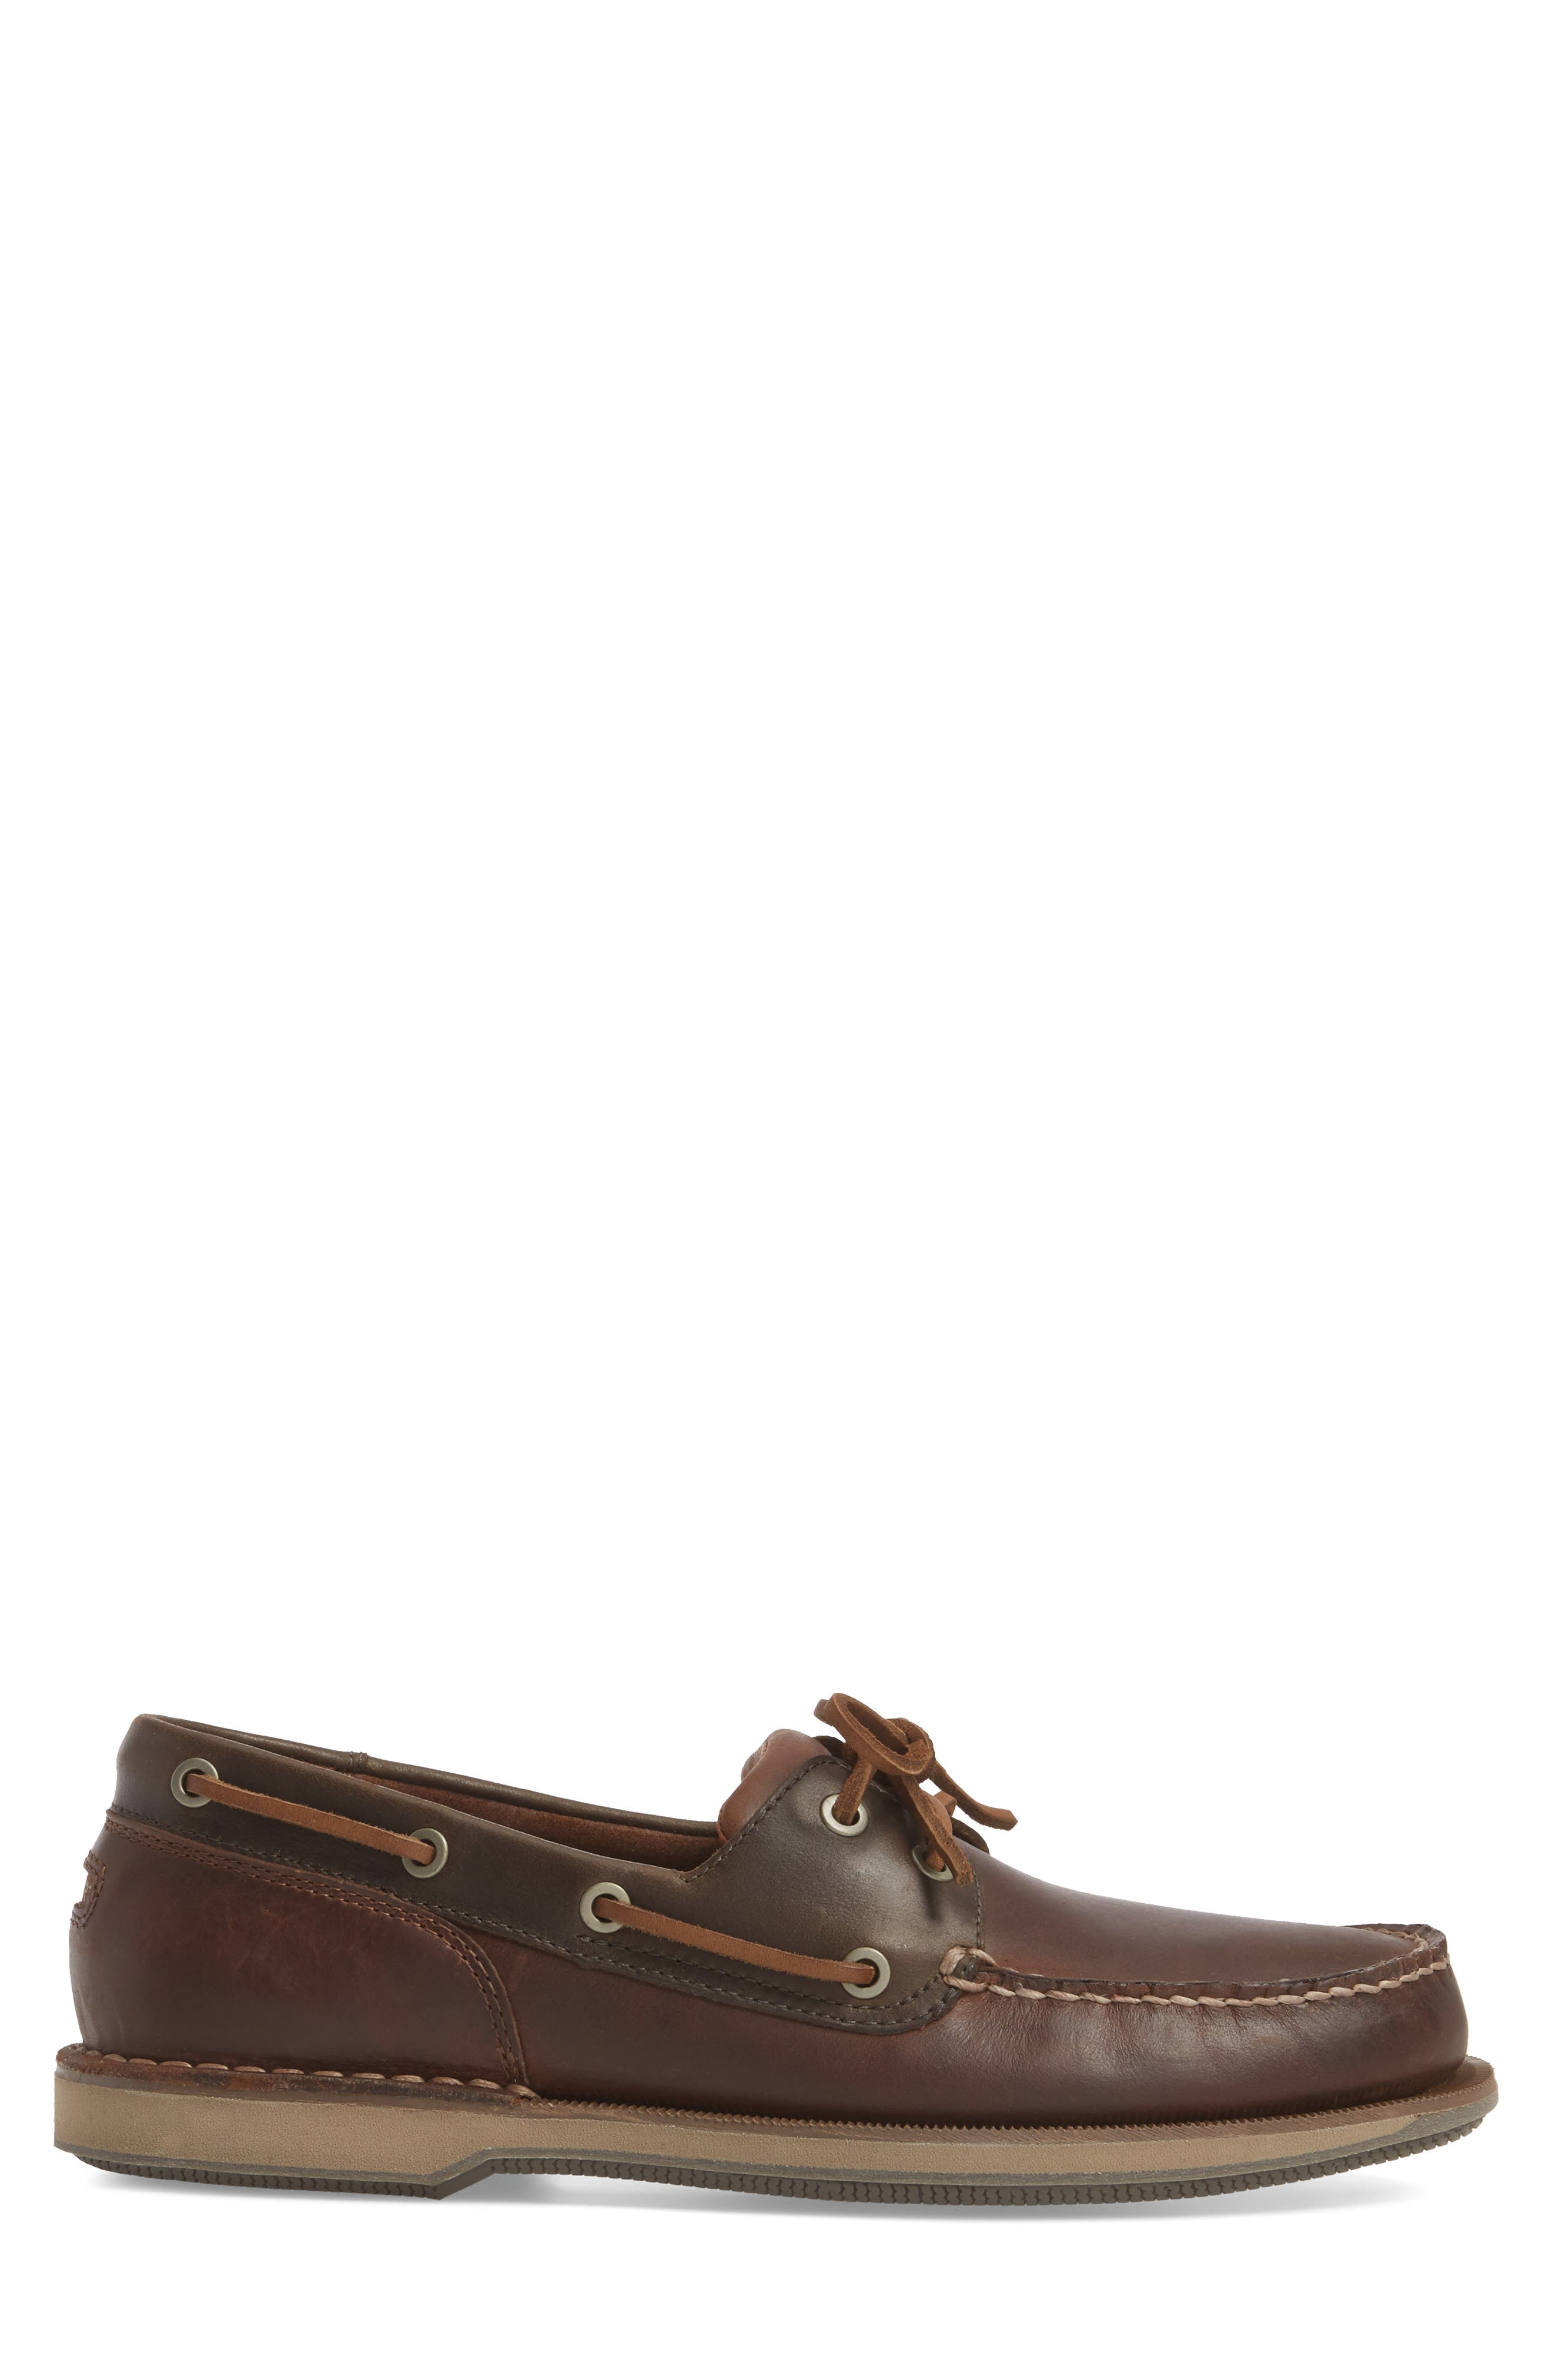 ROCKPORT, 'Perth' Boat Shoe, Alternate thumbnail 3, color, DARK BROWN LEATHER